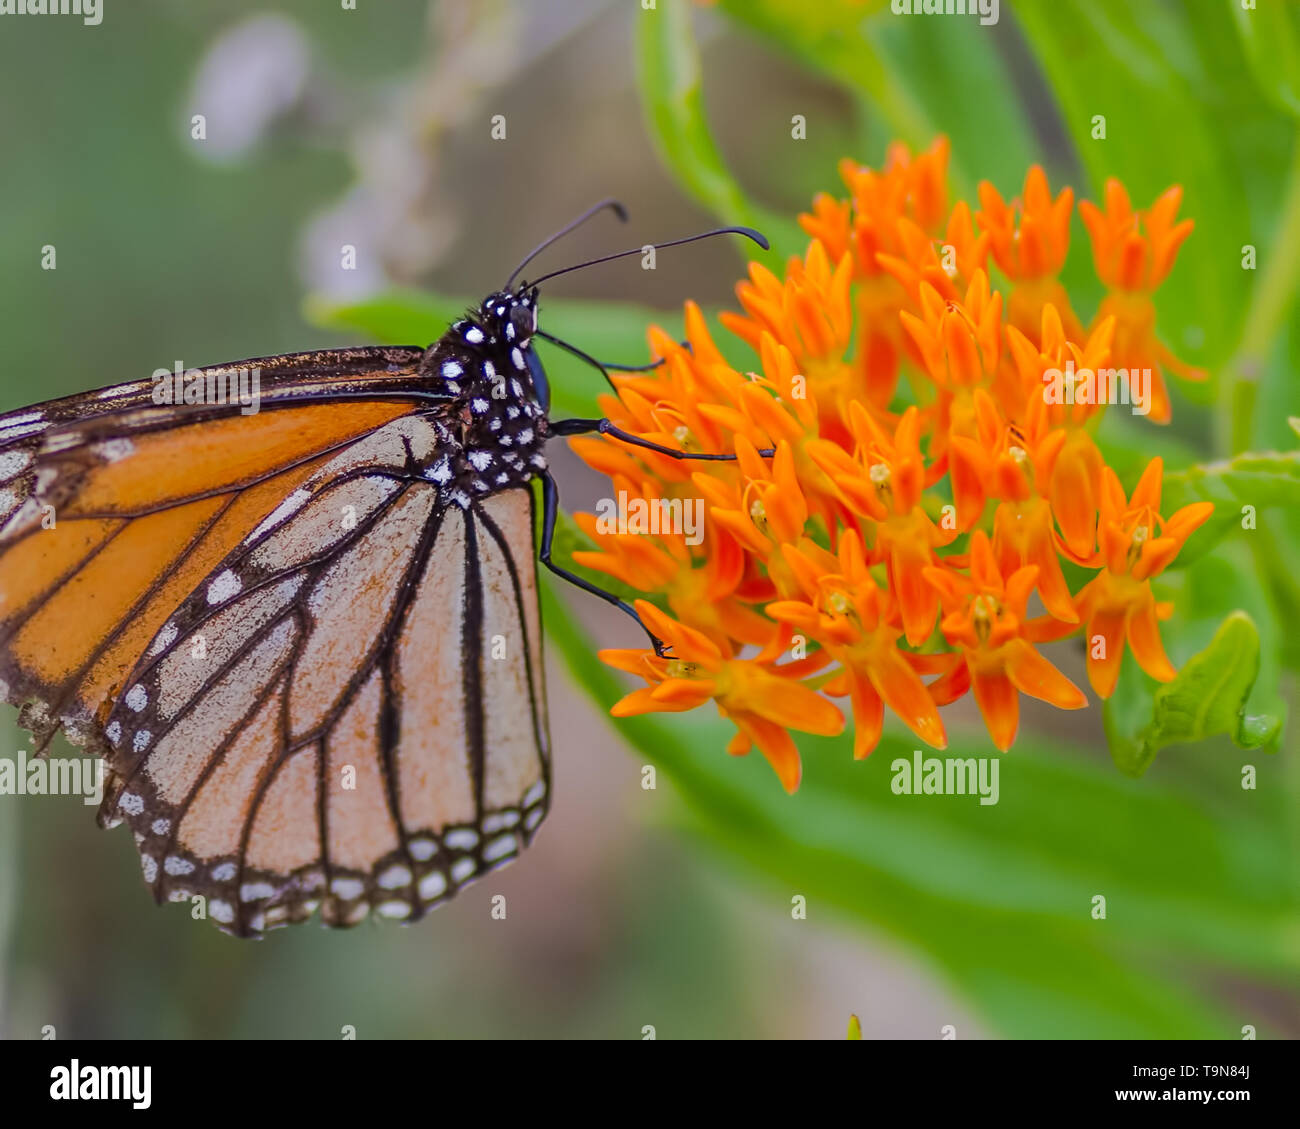 A Monarch butterfly on beautiful orange wildflowers in the Crex Meadows Wildlife Area in Northern Wisconsin - Stock Image